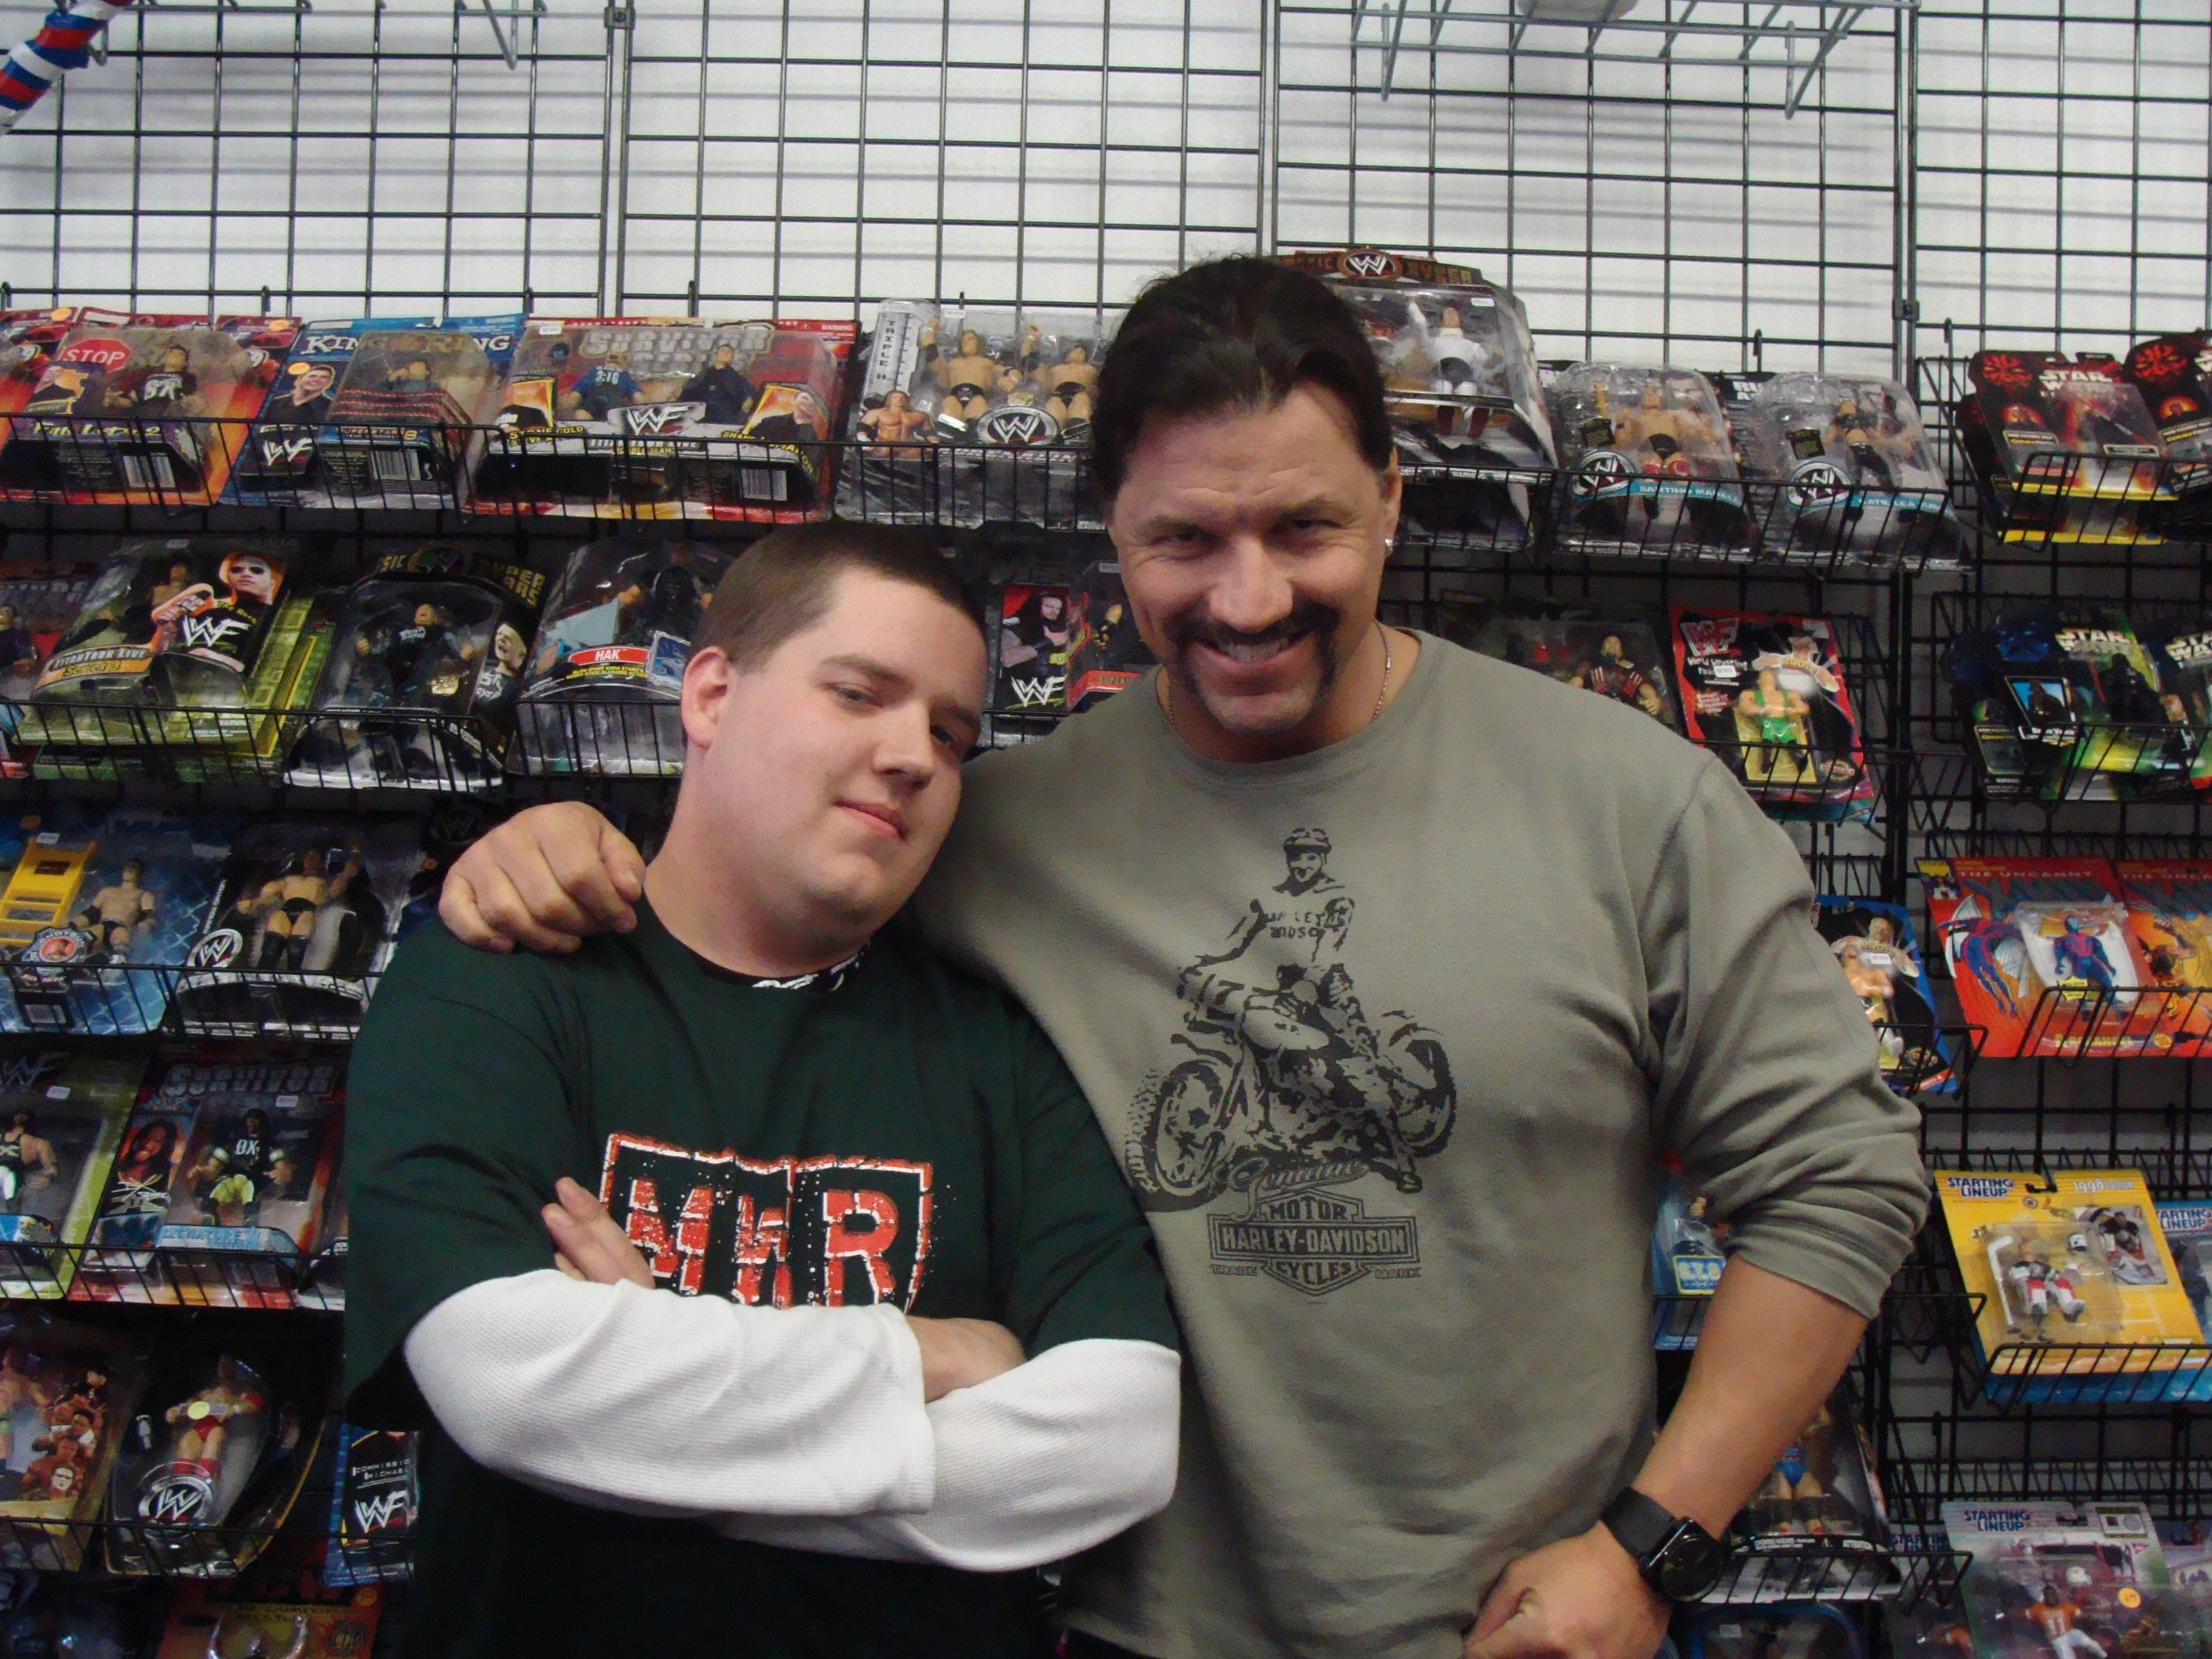 Paul Morad, the winner of the MWR T-shirt raffle poses with Al Snow, who appeared at The Fan Shop on Jan. 30.